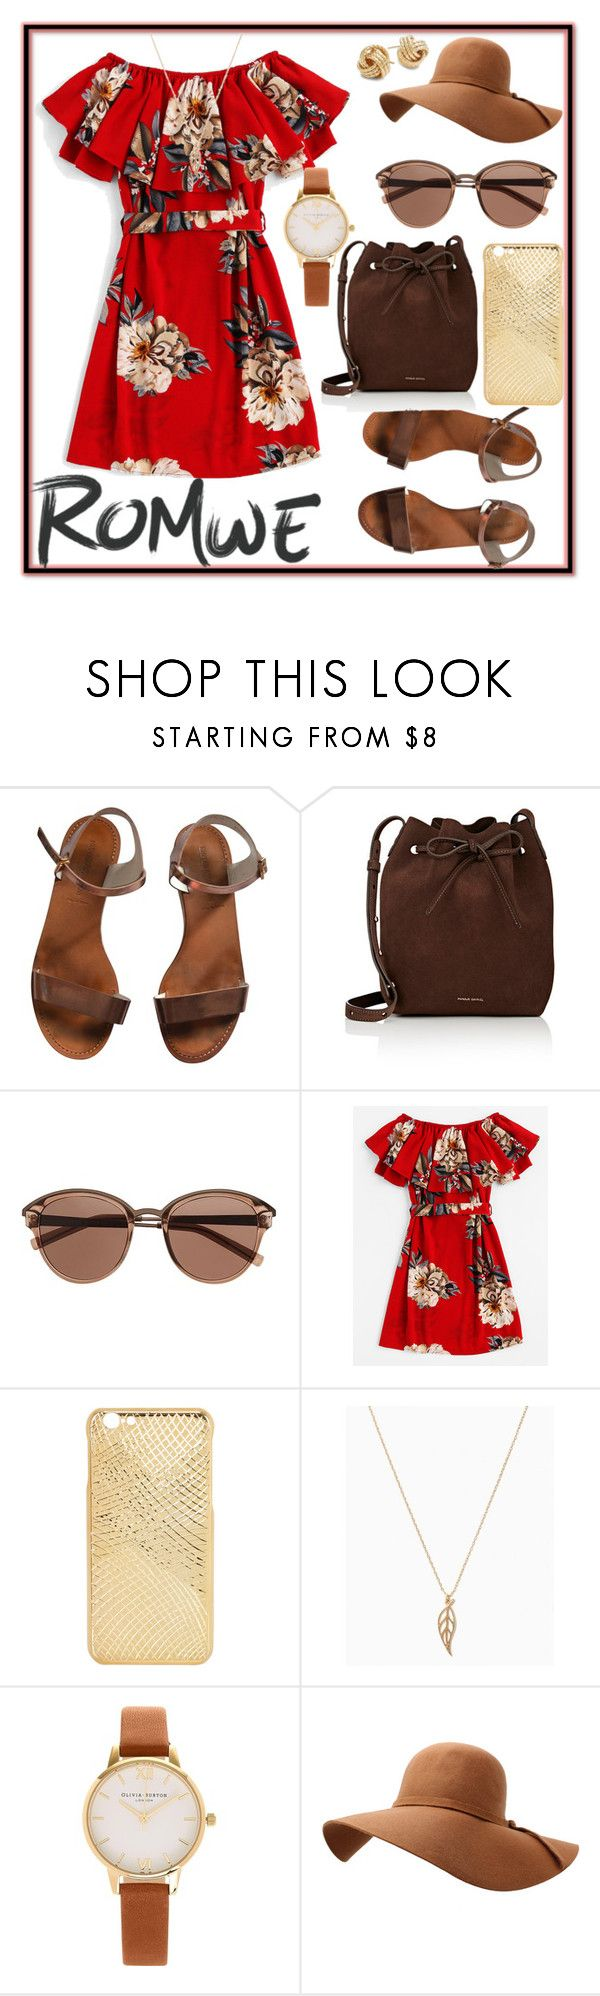 """Romwe — Win $30 Coupon"" by pretty-sassy ❤ liked on Polyvore featuring Emporio Armani, Mansur Gavriel, Witchery, Olivia Burton, Saks Fifth Avenue, floral and romwe"